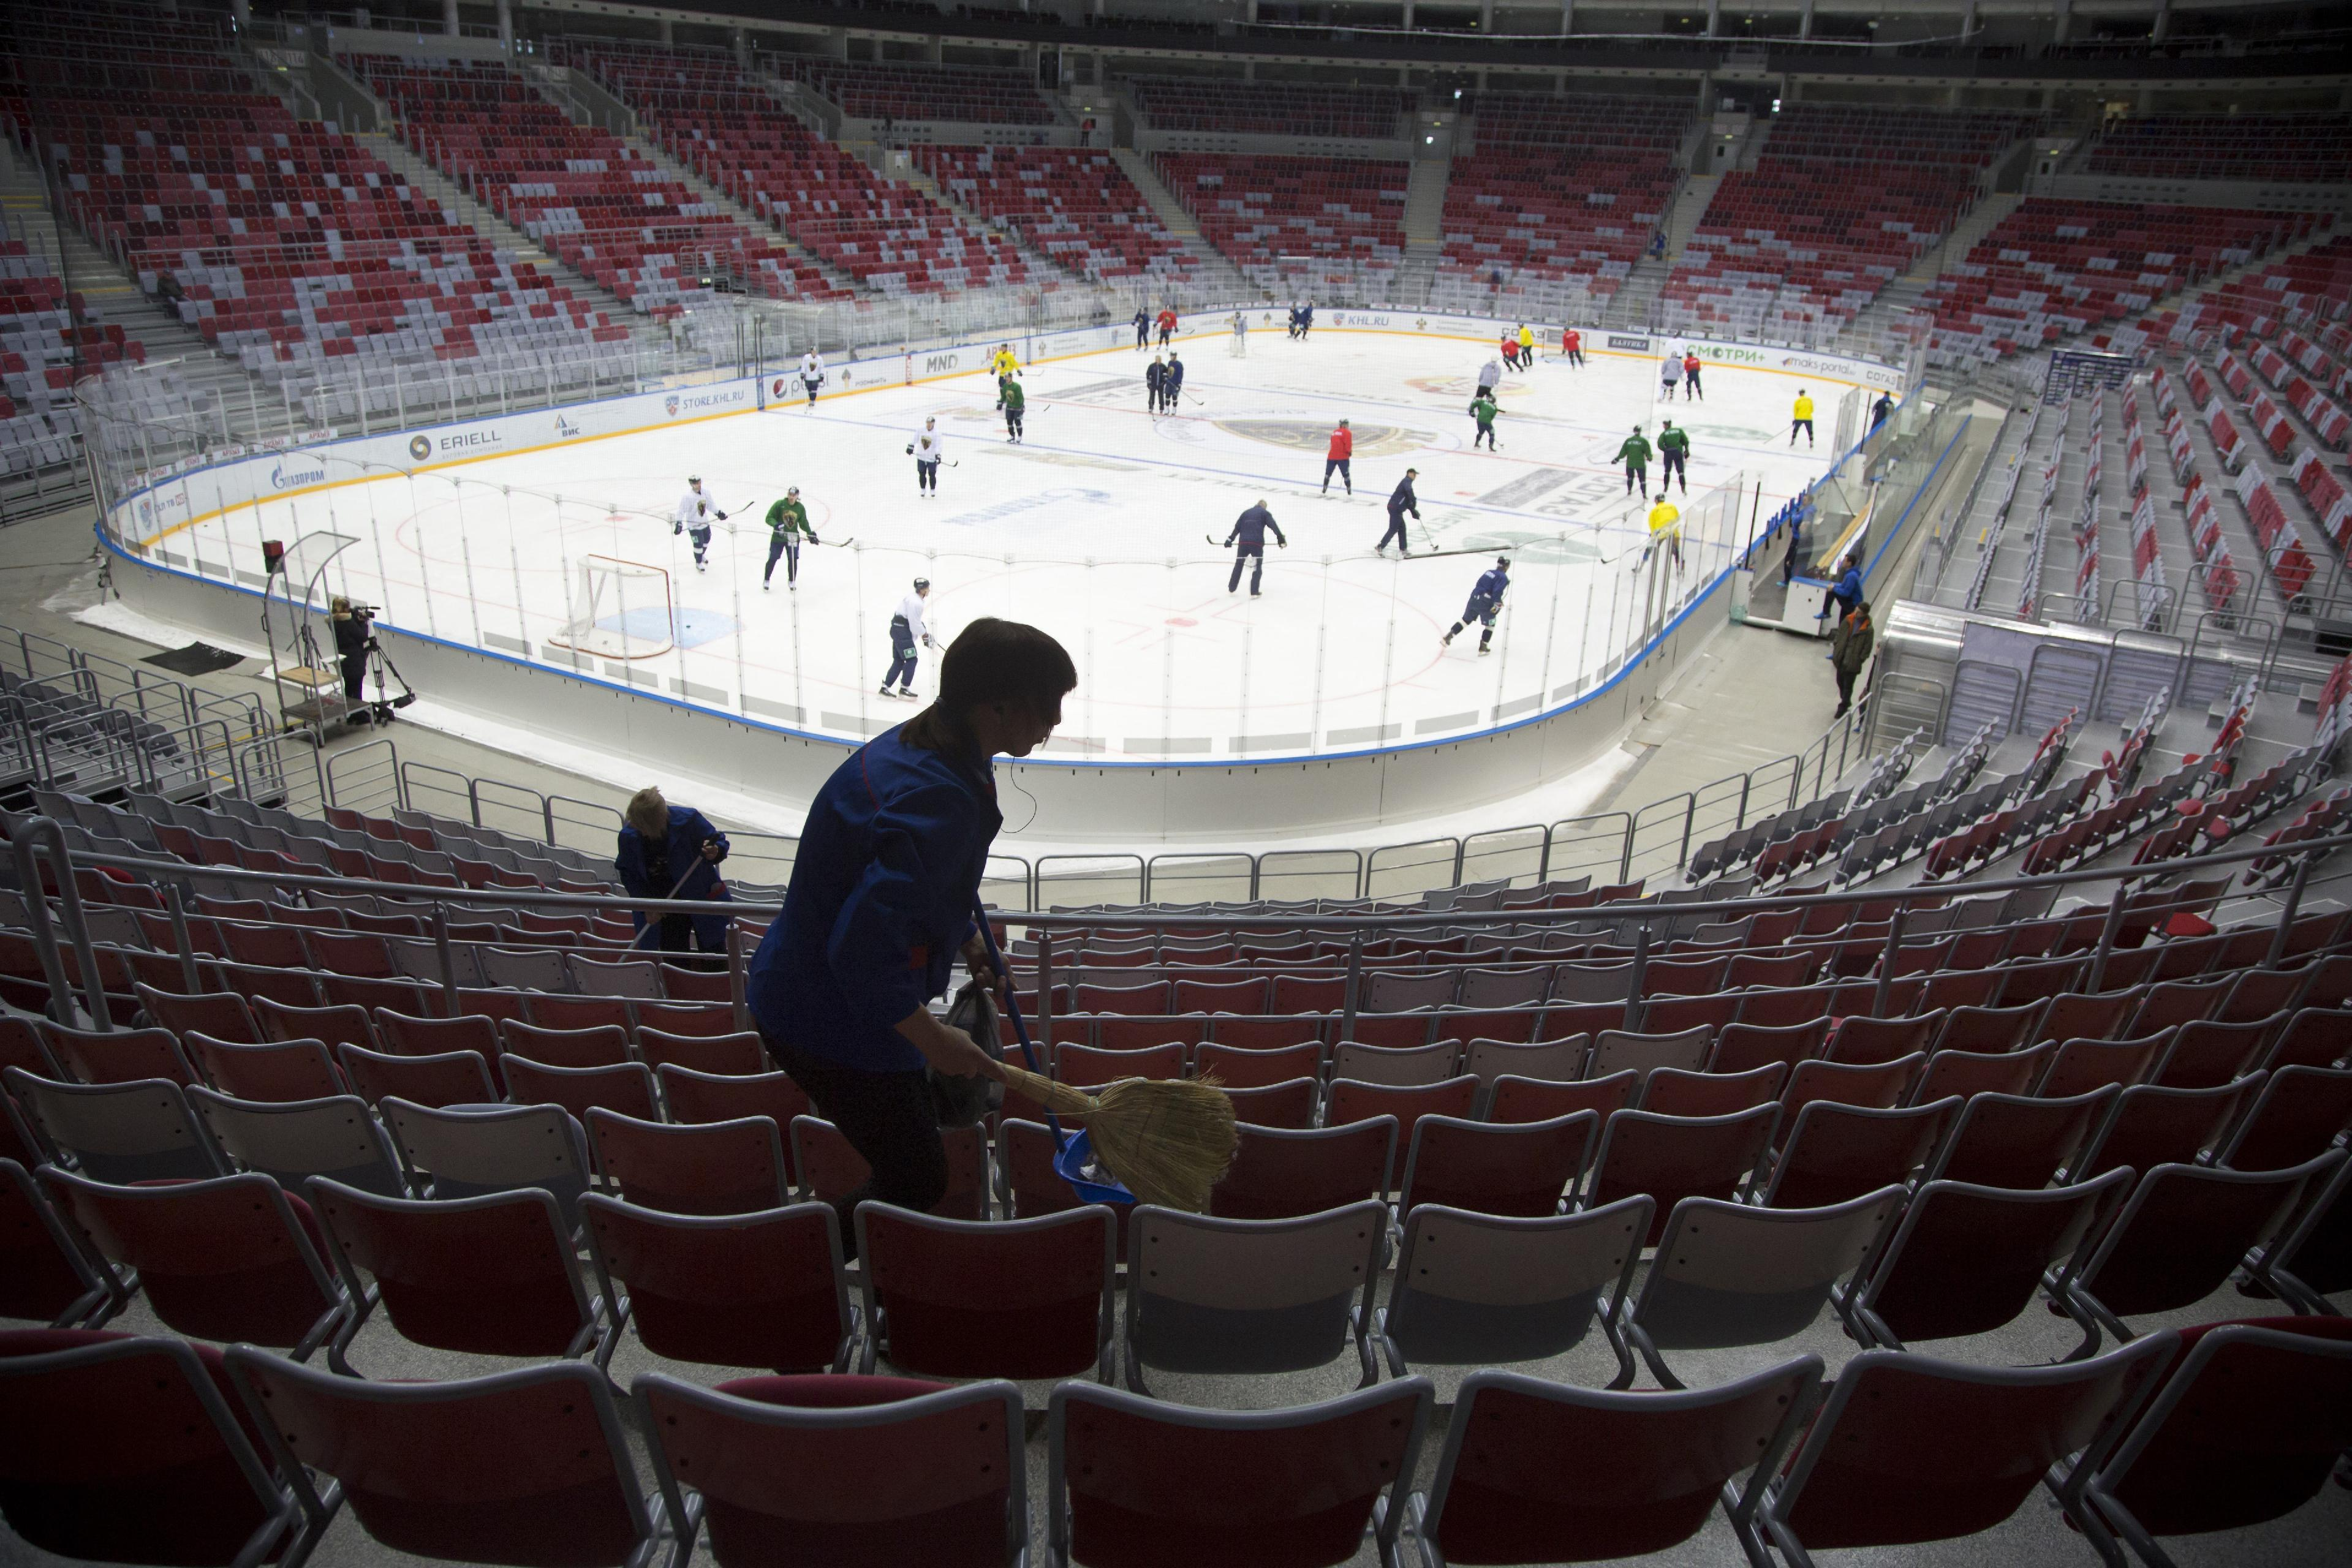 Sochi hockey team thriving a year after Winter Olympics